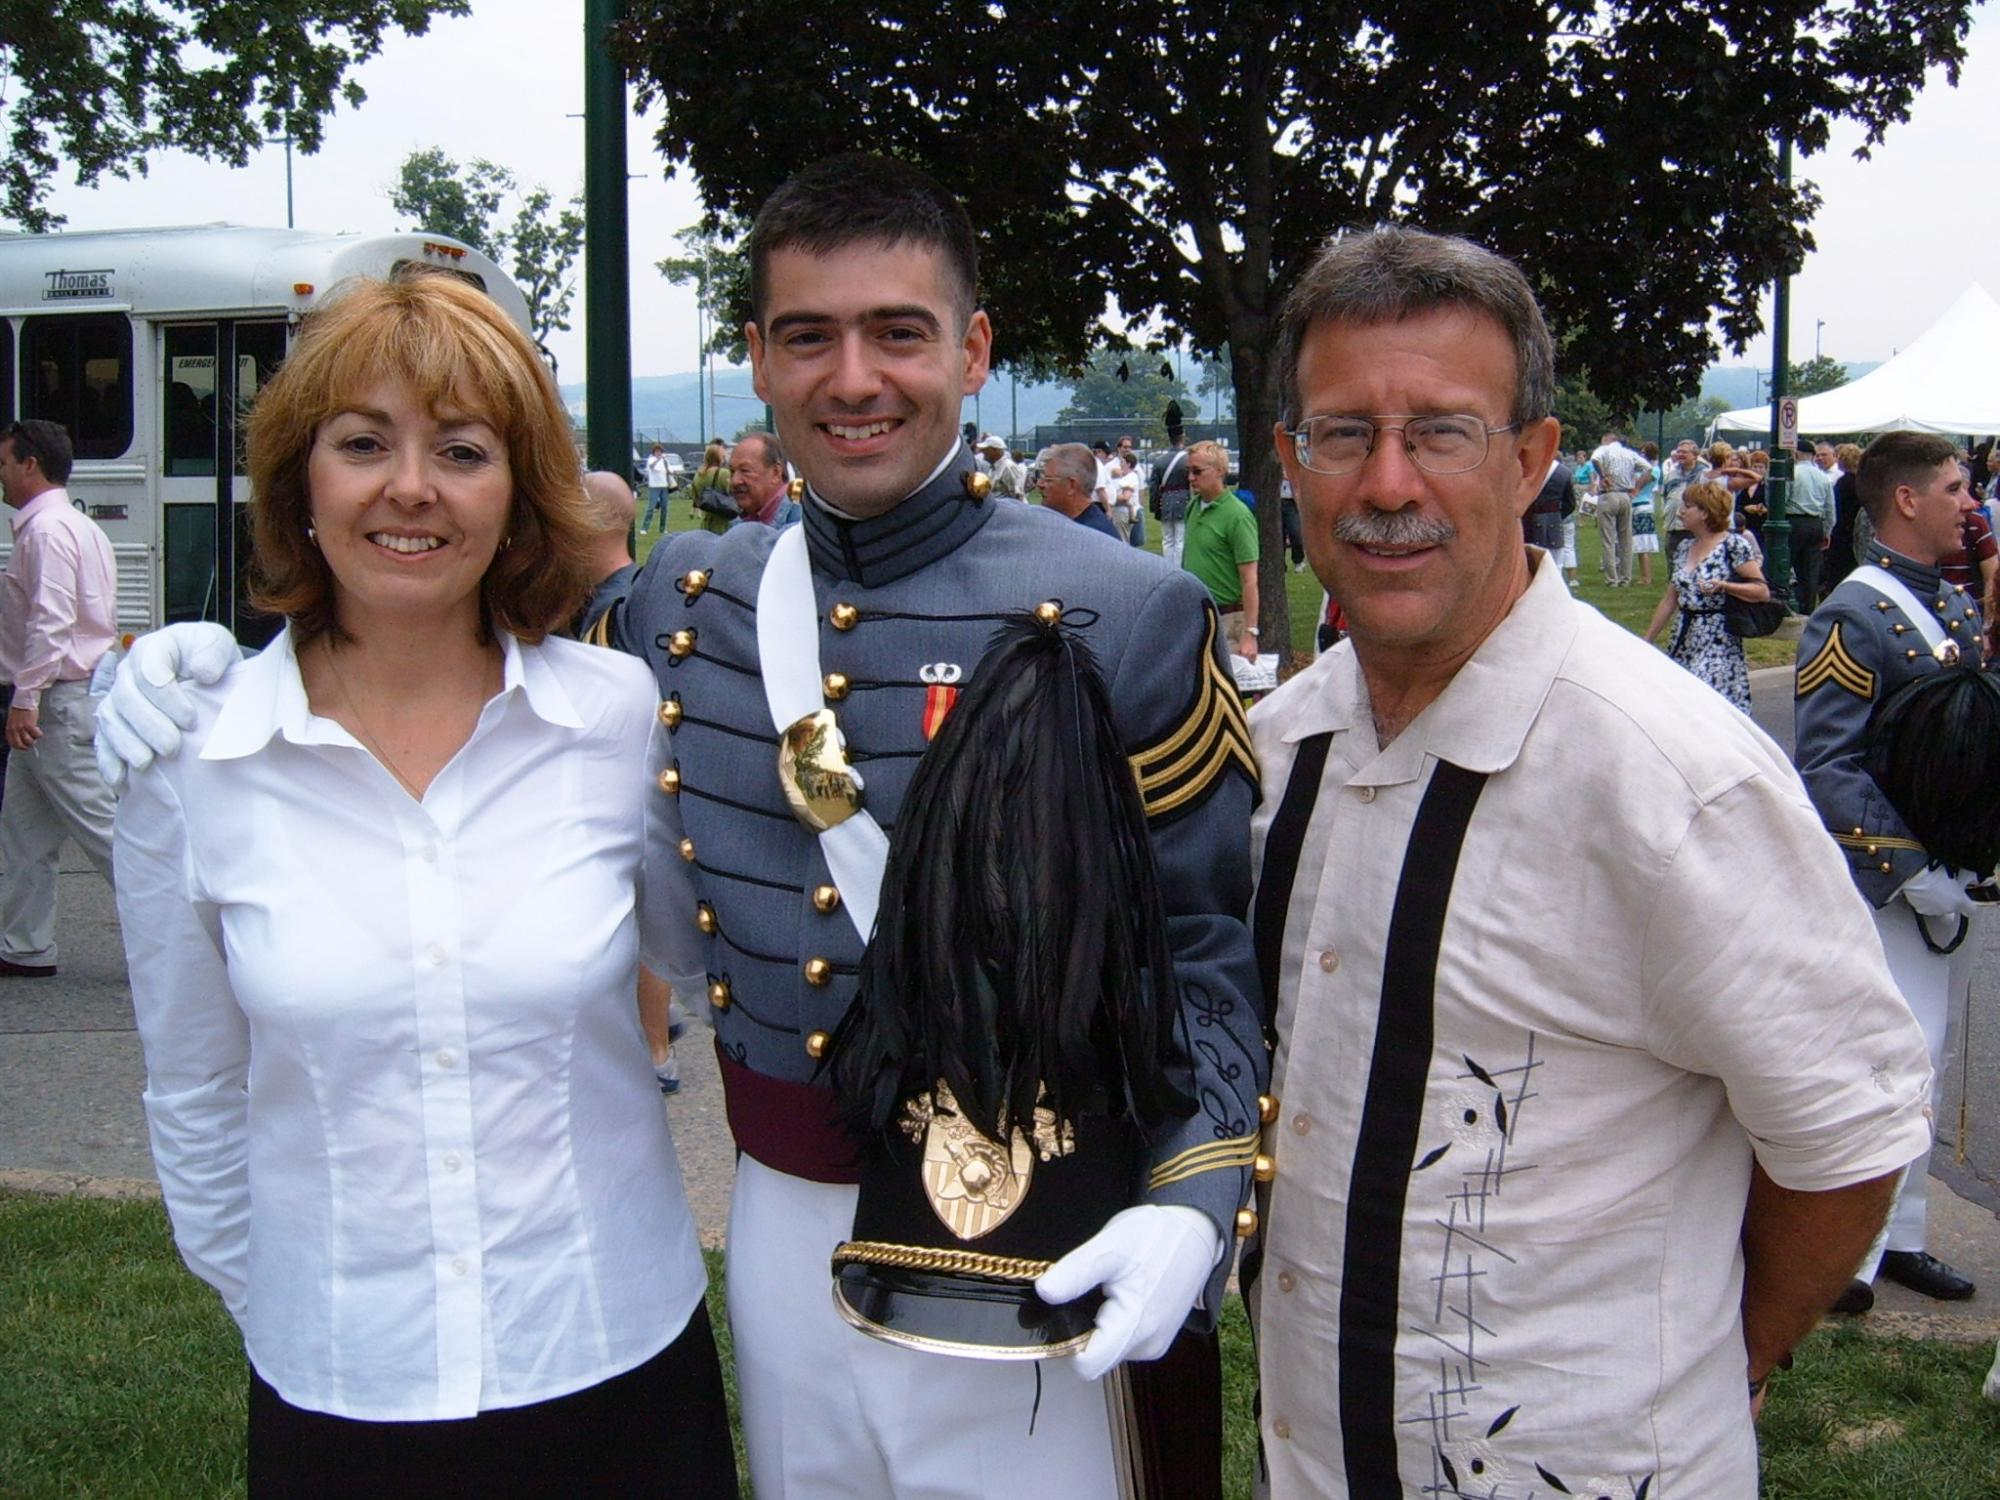 WestPointGraduationParade.jpg